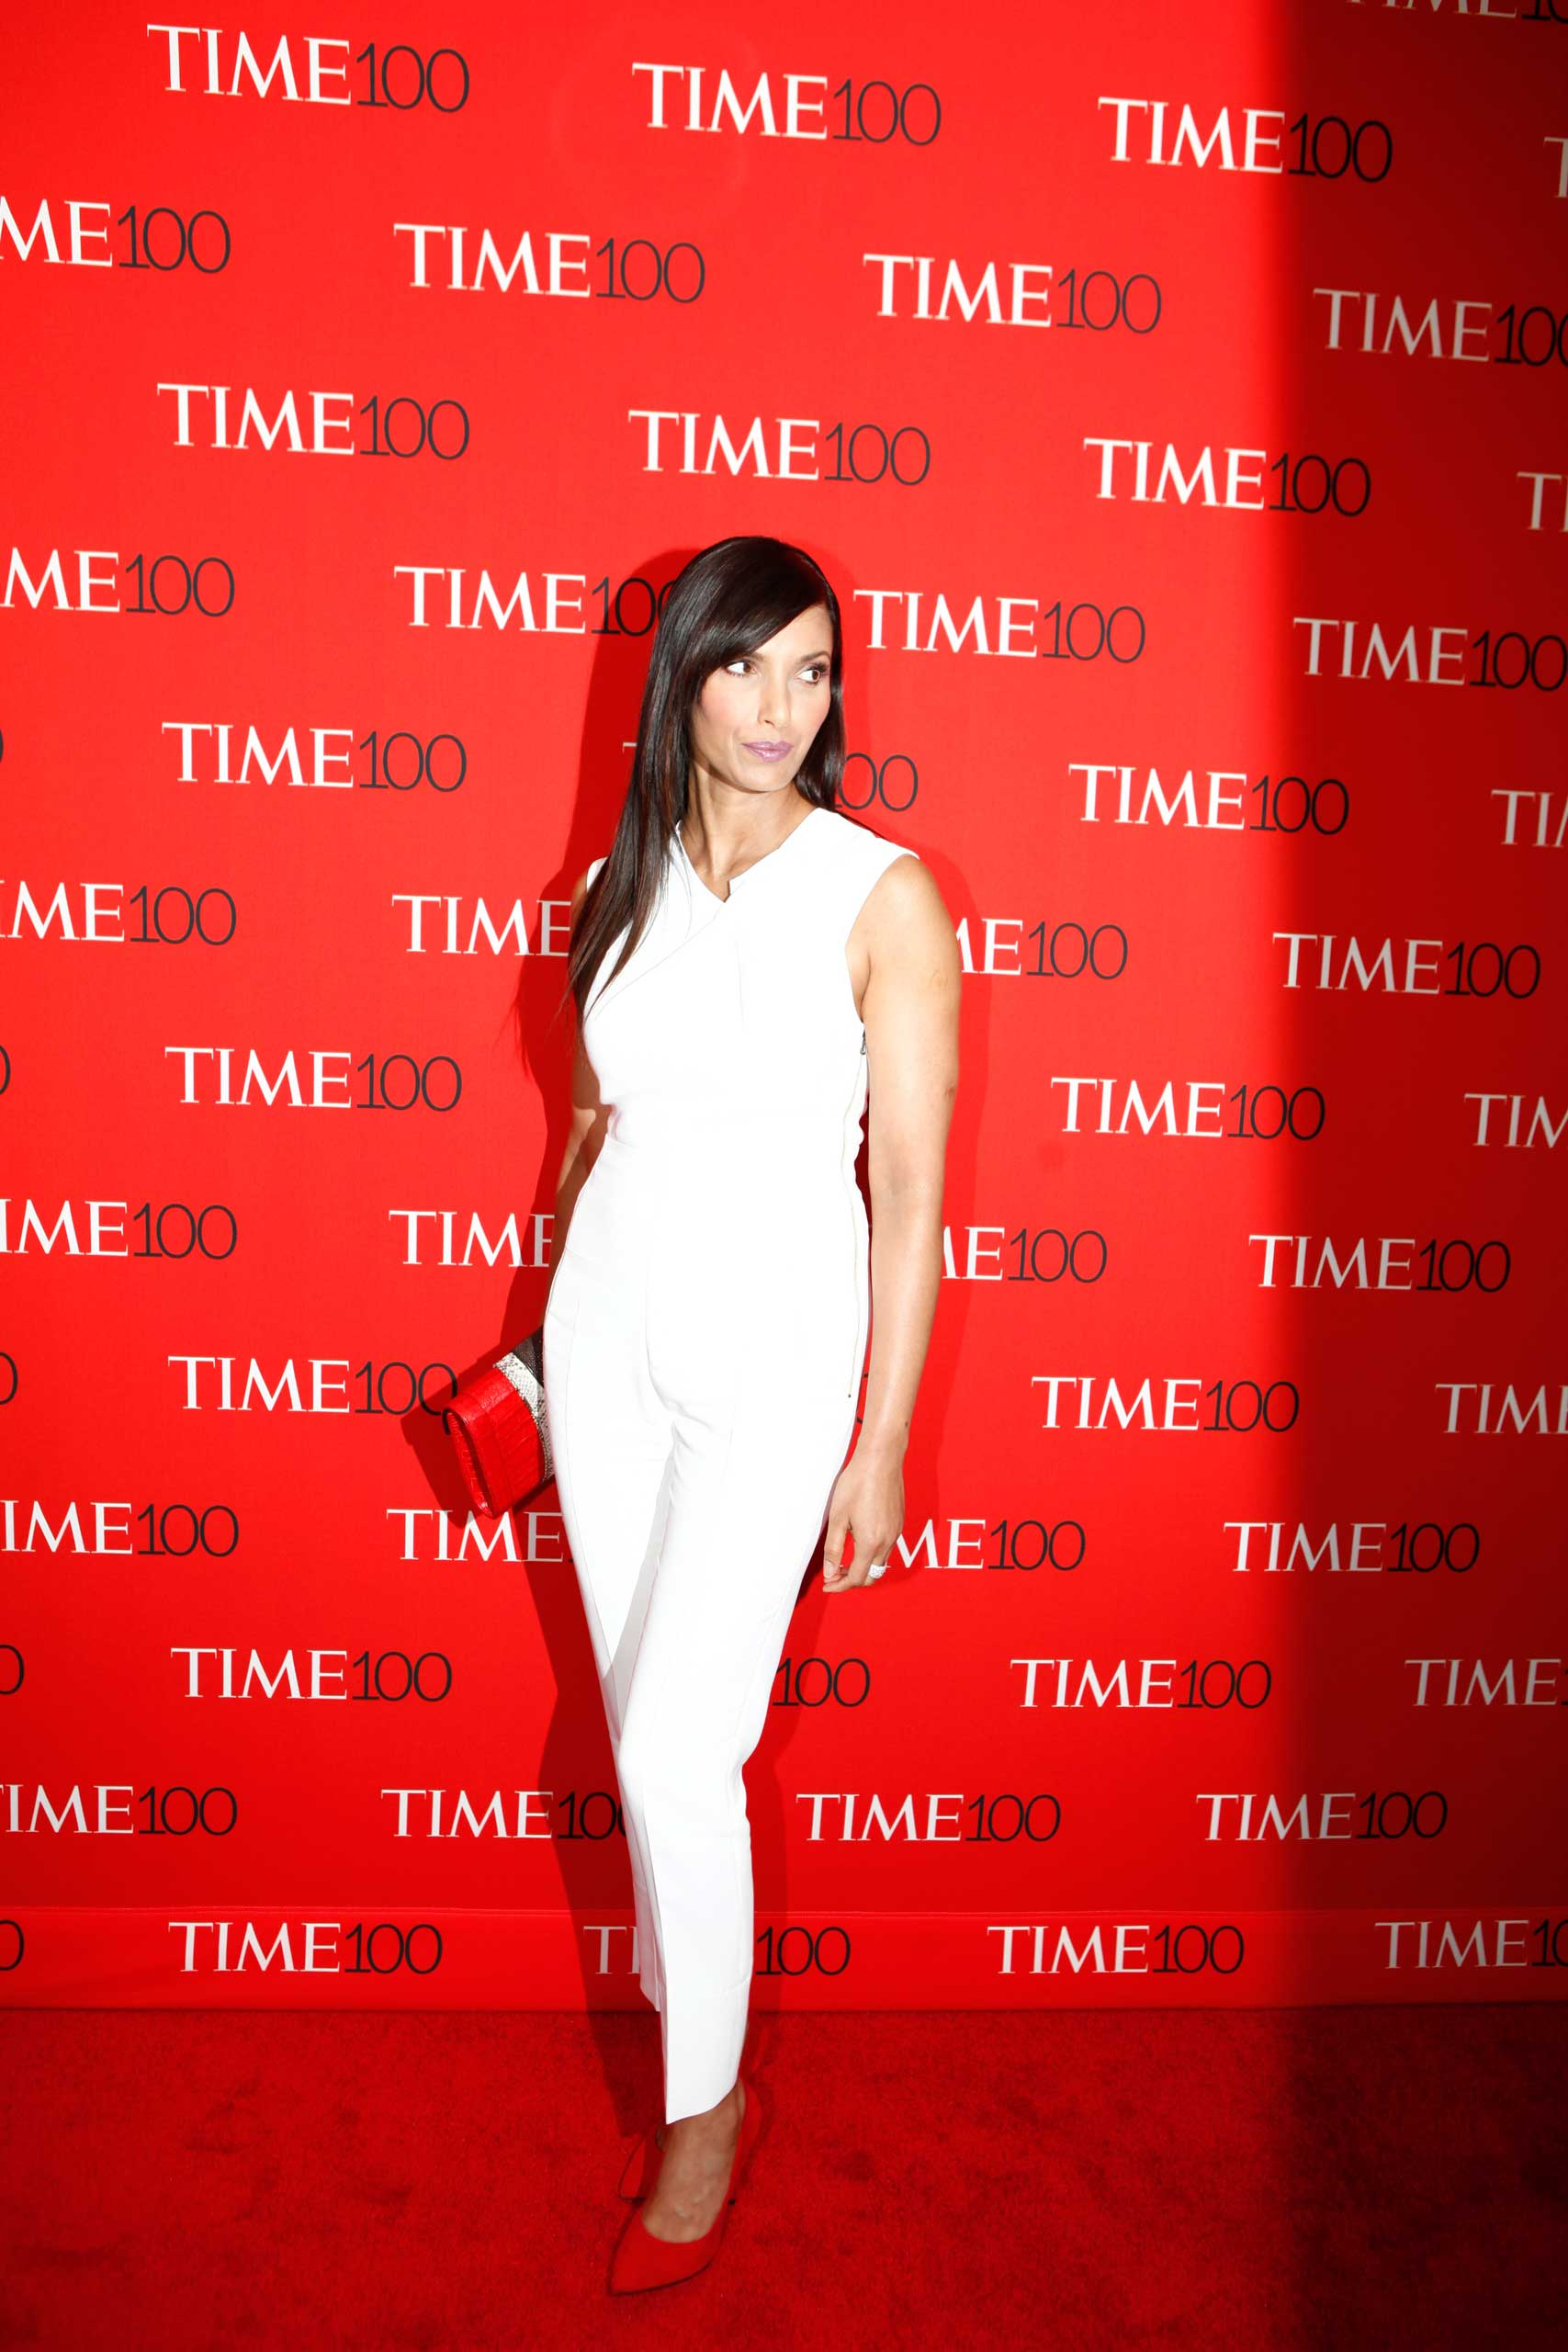 Padma Lakshmi attends the TIME 100 Gala at Jazz at Lincoln Center in New York City on Apr. 21, 2015.